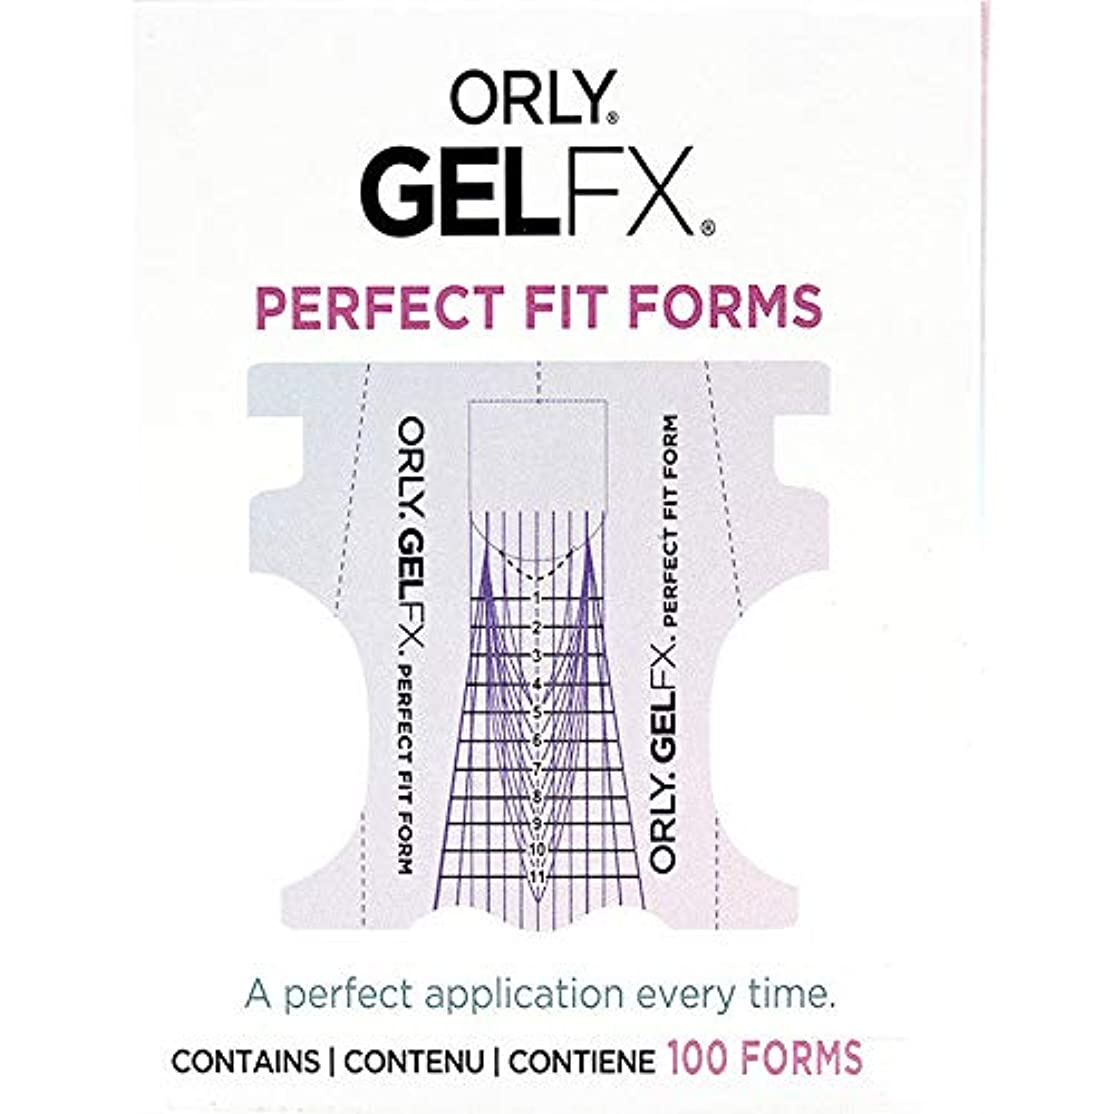 Orly Gel FX - Perfect Fit Forms - 100 count